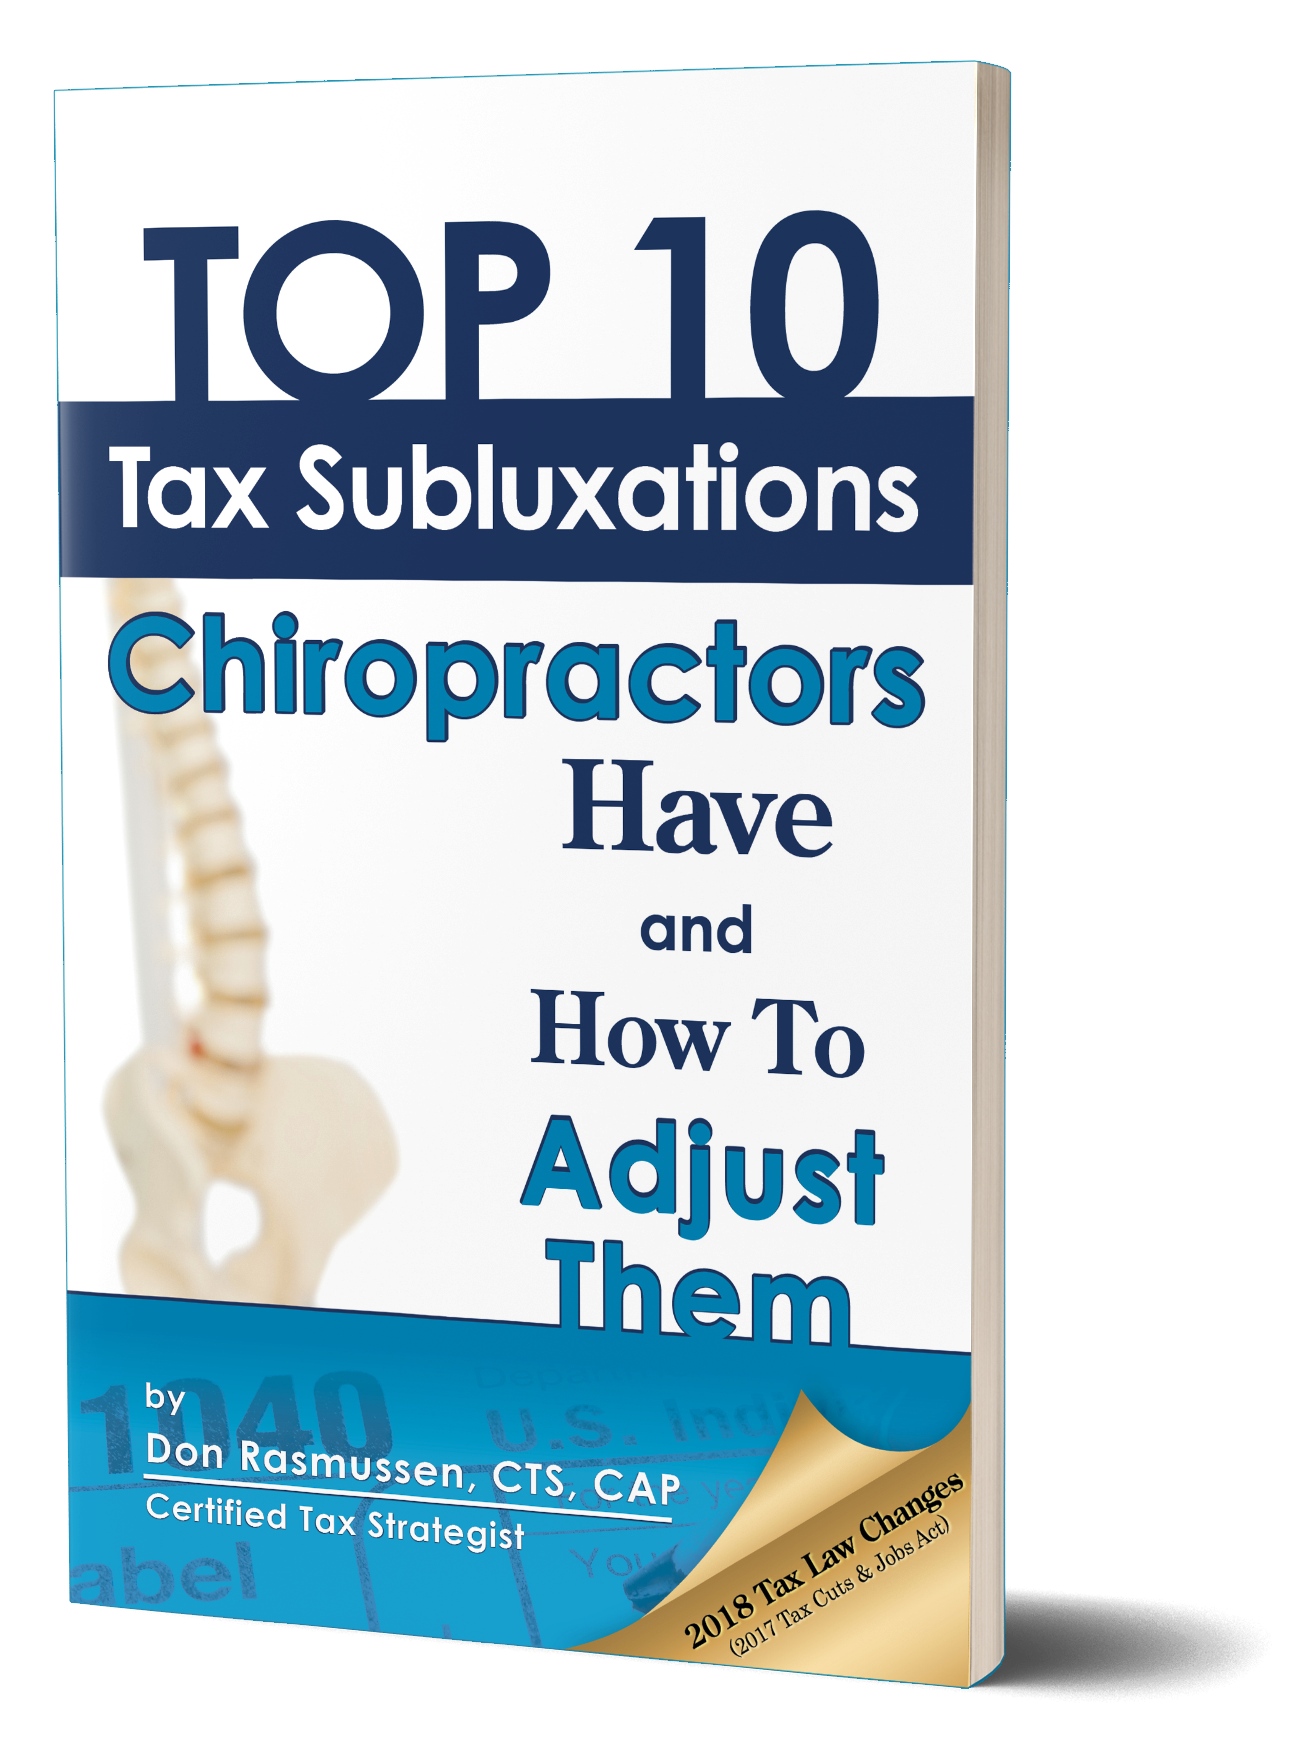 Chiropractors, tired of overpaying on your taxes? - Get your FREE copy of Top 10 Tax Subluxations Chiropractors Have and How to Adjust Them(2018 Edition)